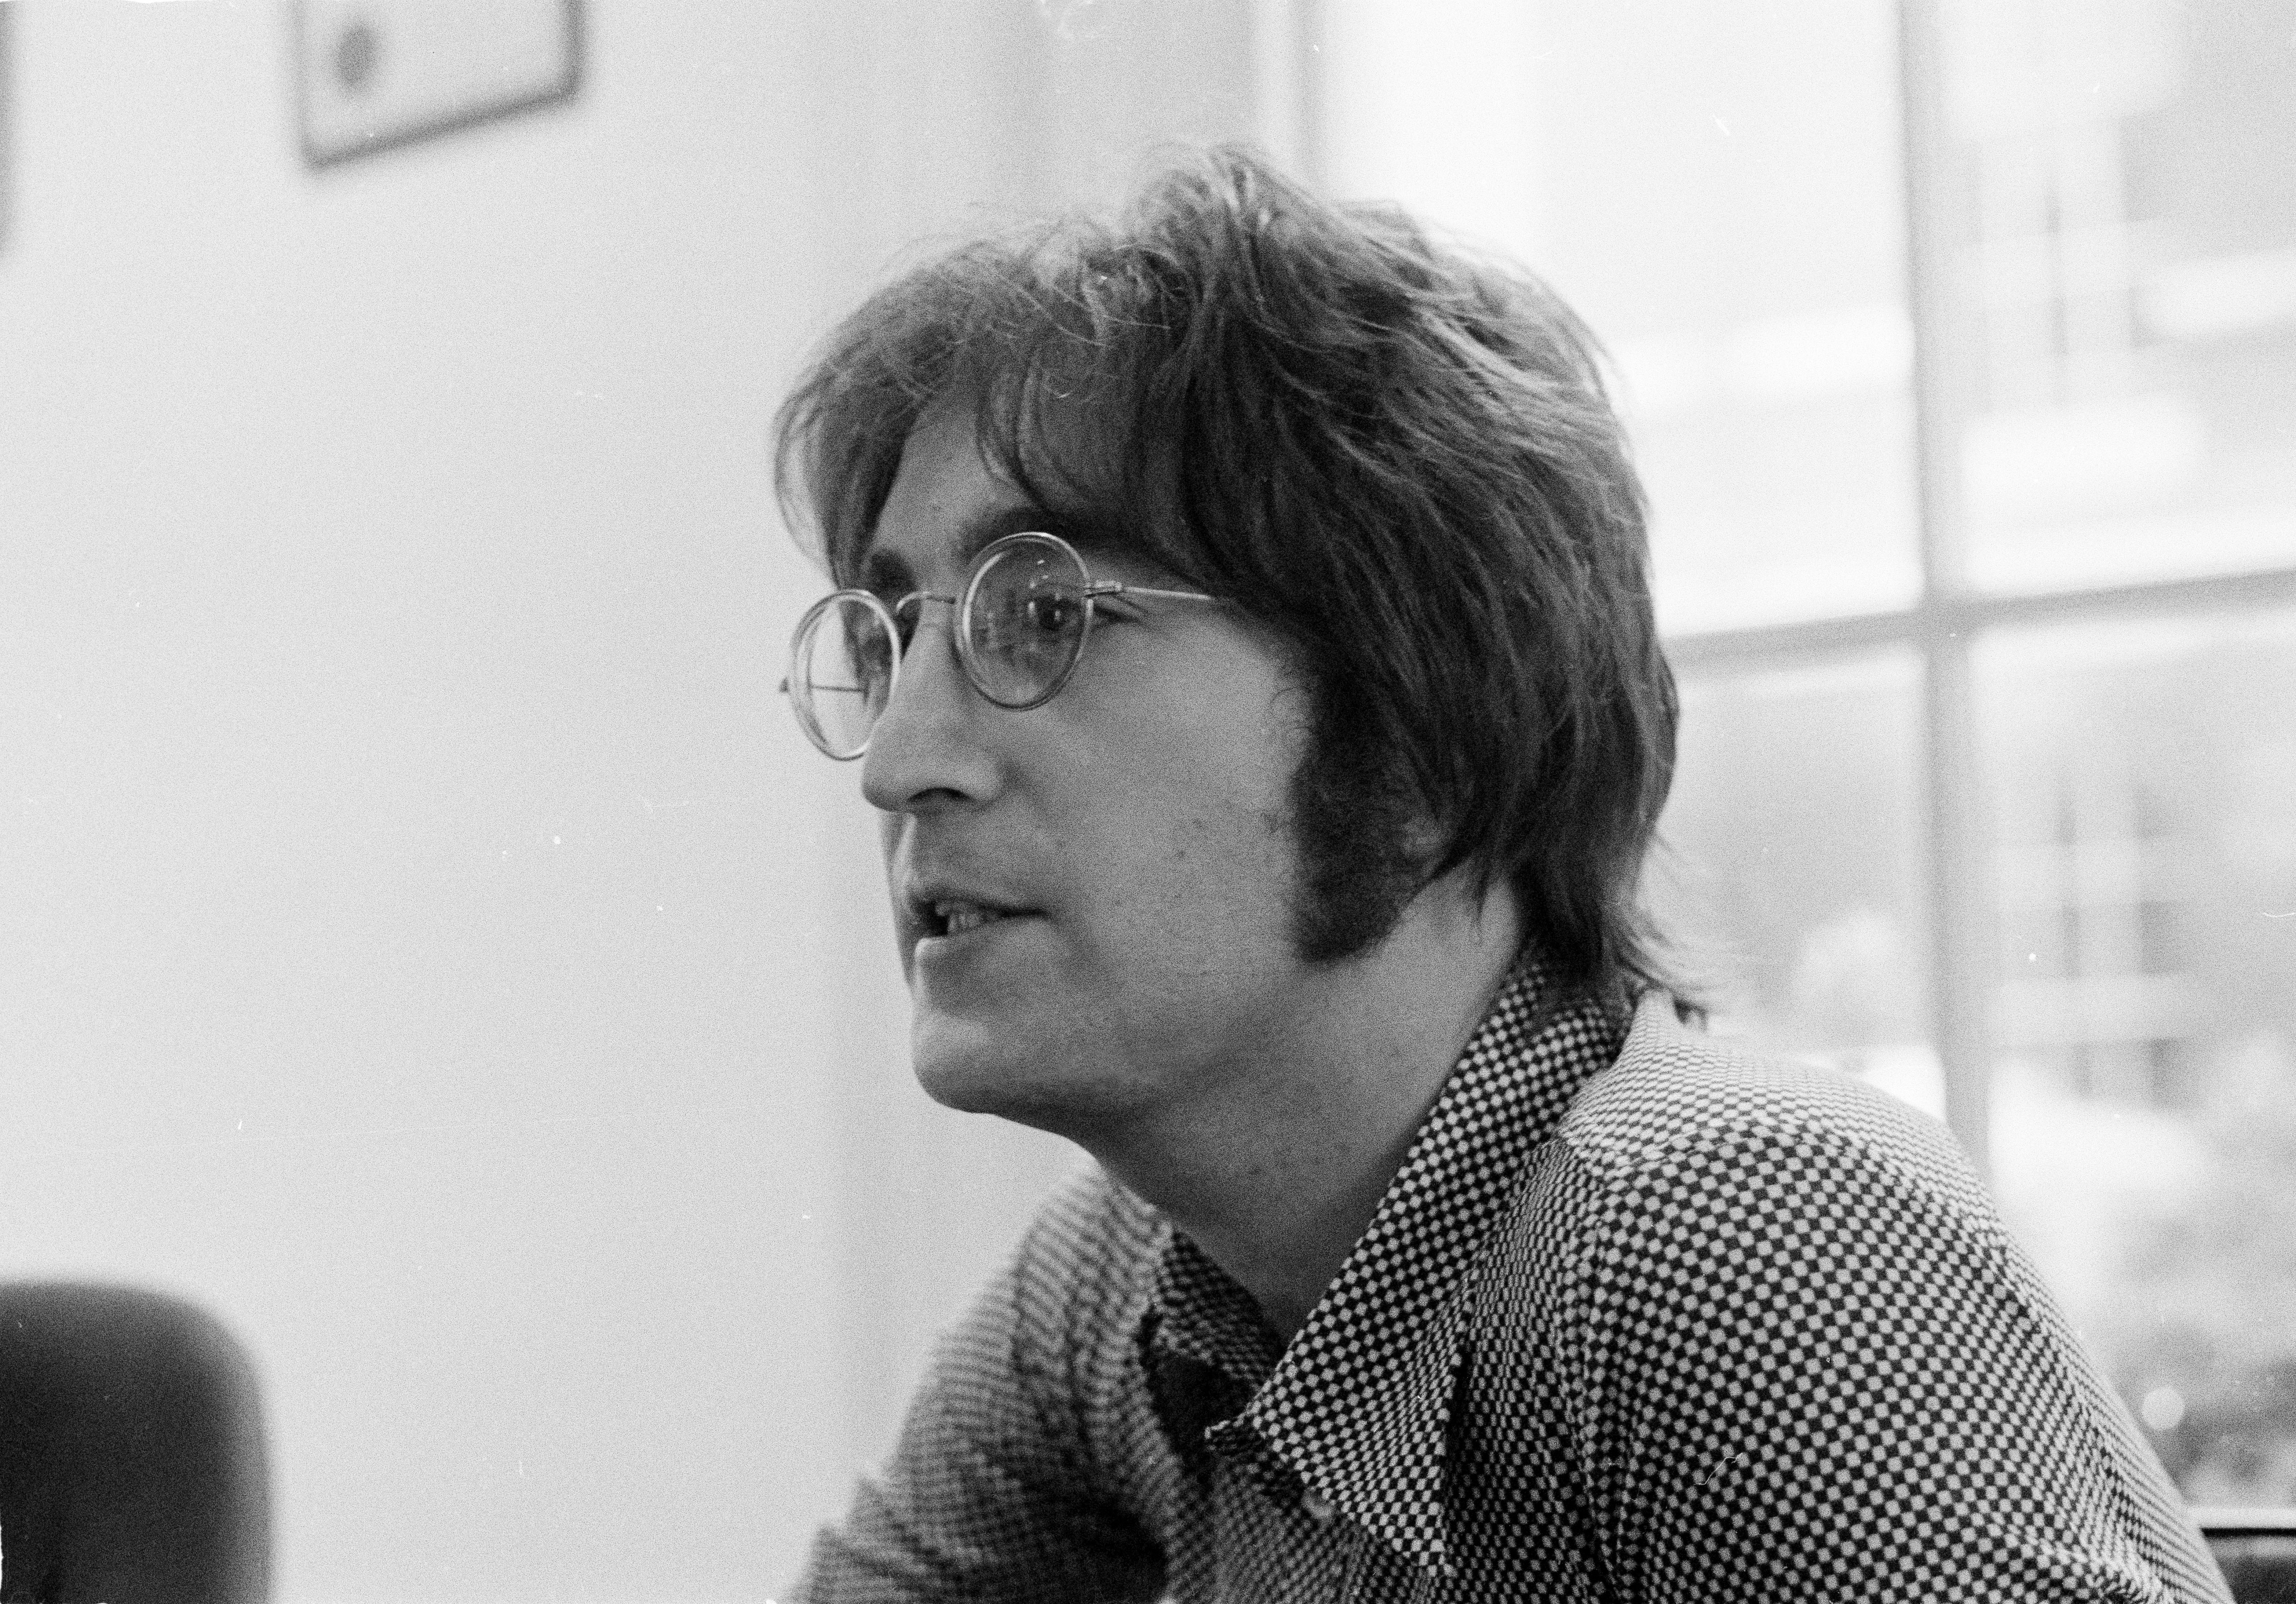 John lennon pictures of